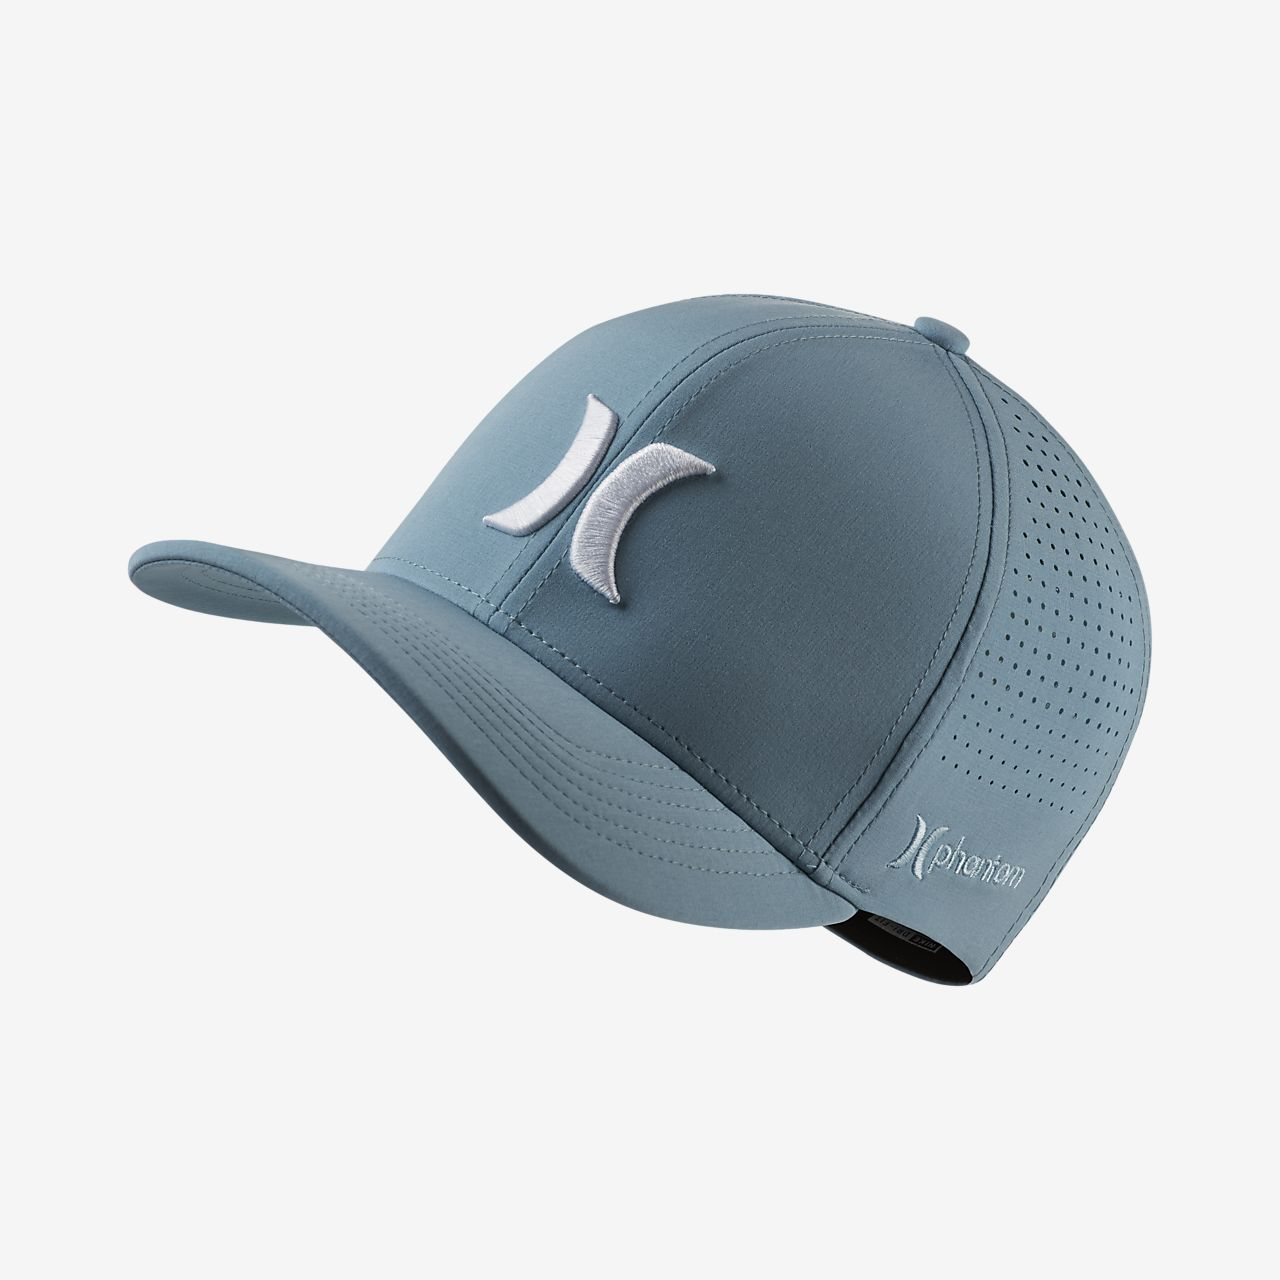 huge discount 773bf 6c462 ... clearance hurley phantom vapor 3.0 mens fitted hat 7d14c 220f5